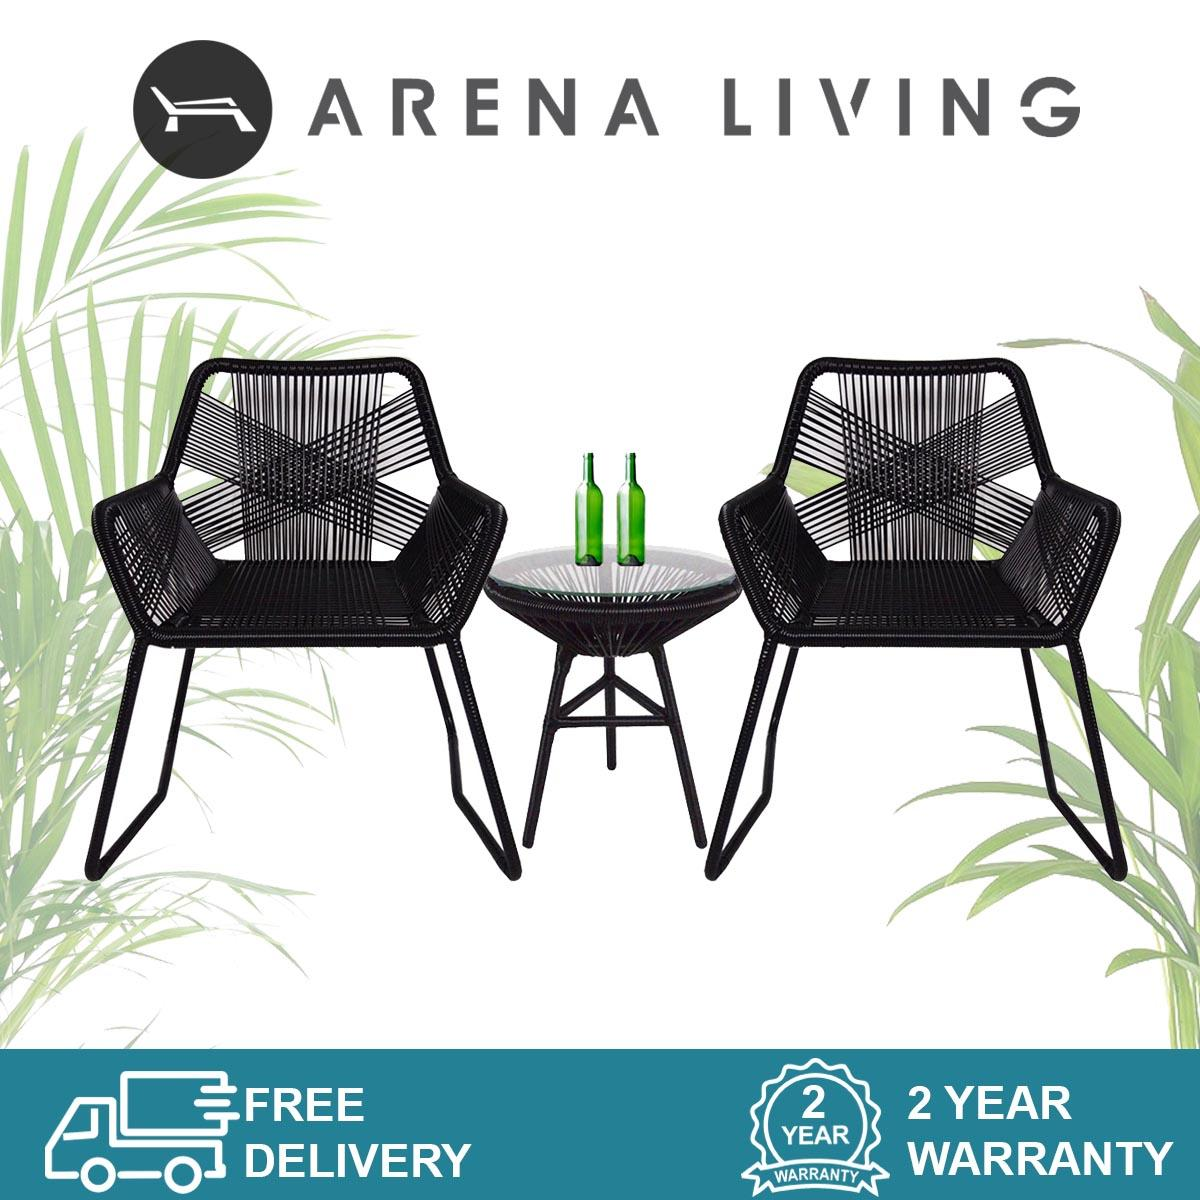 Bay Patio Set by Arena Living Outdoor Furniture (Fully Assembled)